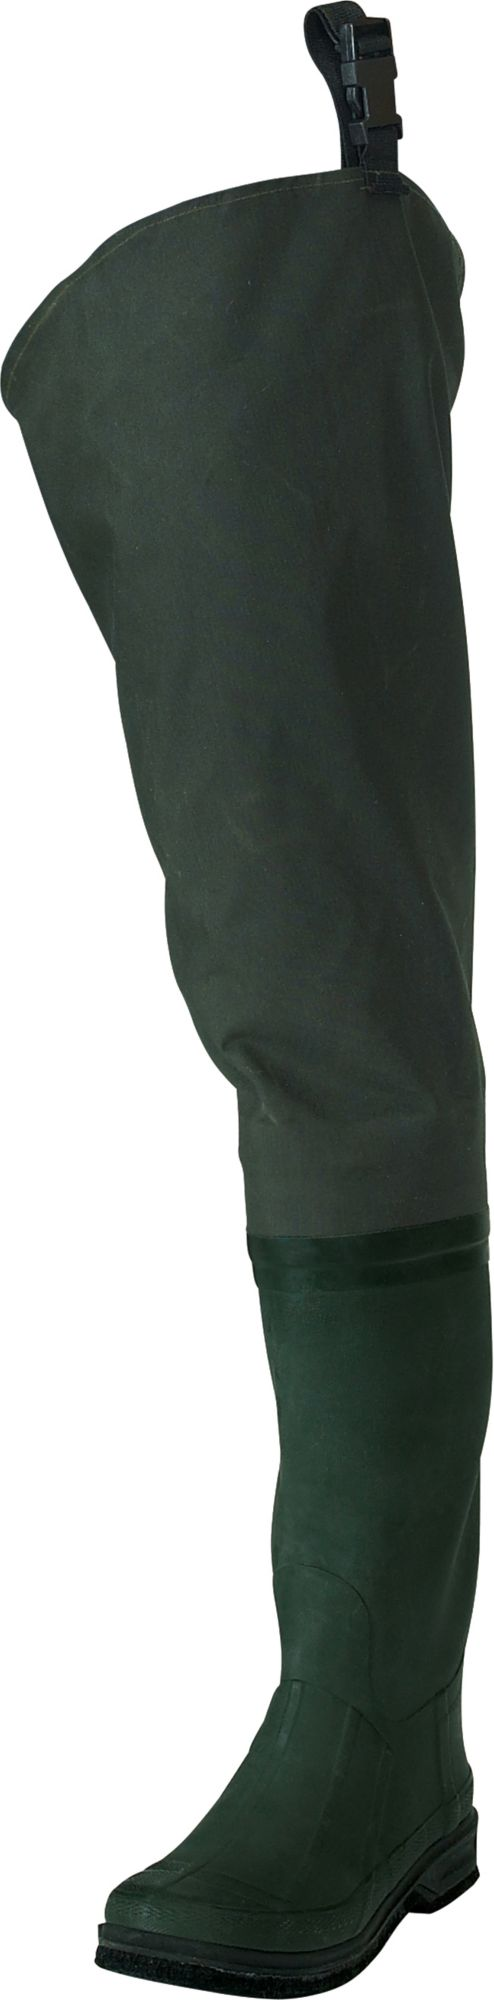 frogg toggs Youth Cascades Rubber Hip Waders, Dark Green/Green thumbnail